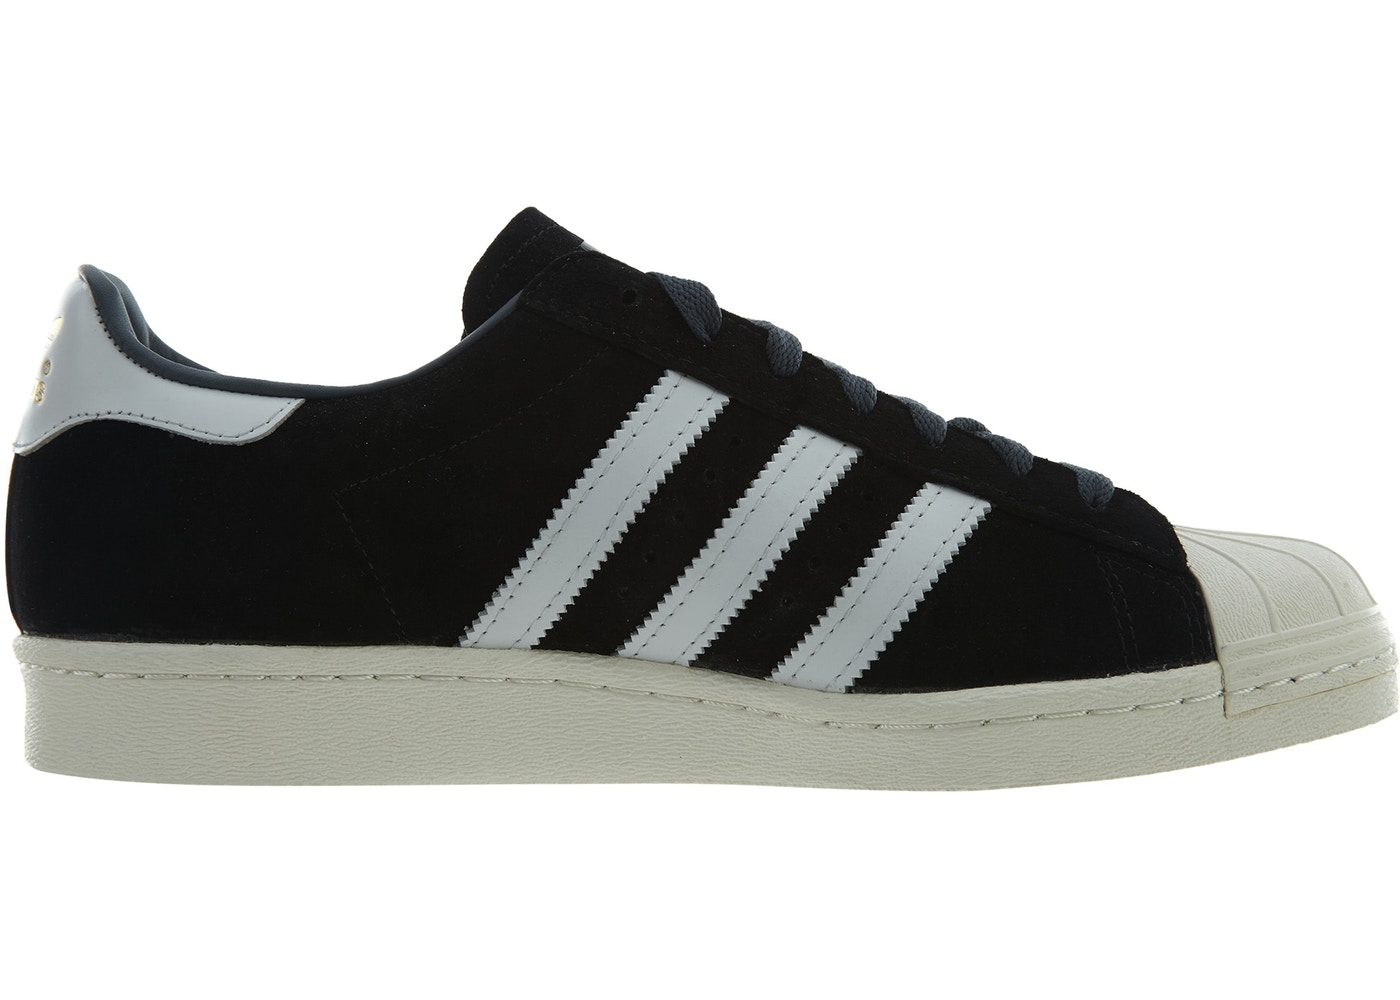 4624879d Sell. or Ask. Size: 9.5. View All Bids. adidas Superstar 80s Dlx Suede Black  White-Gold Metallic